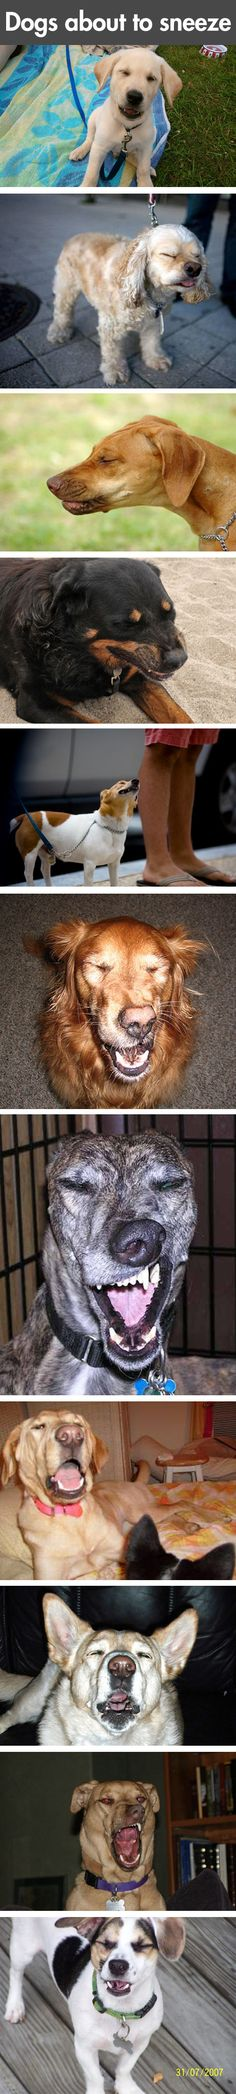 Dogs about to sneeze…